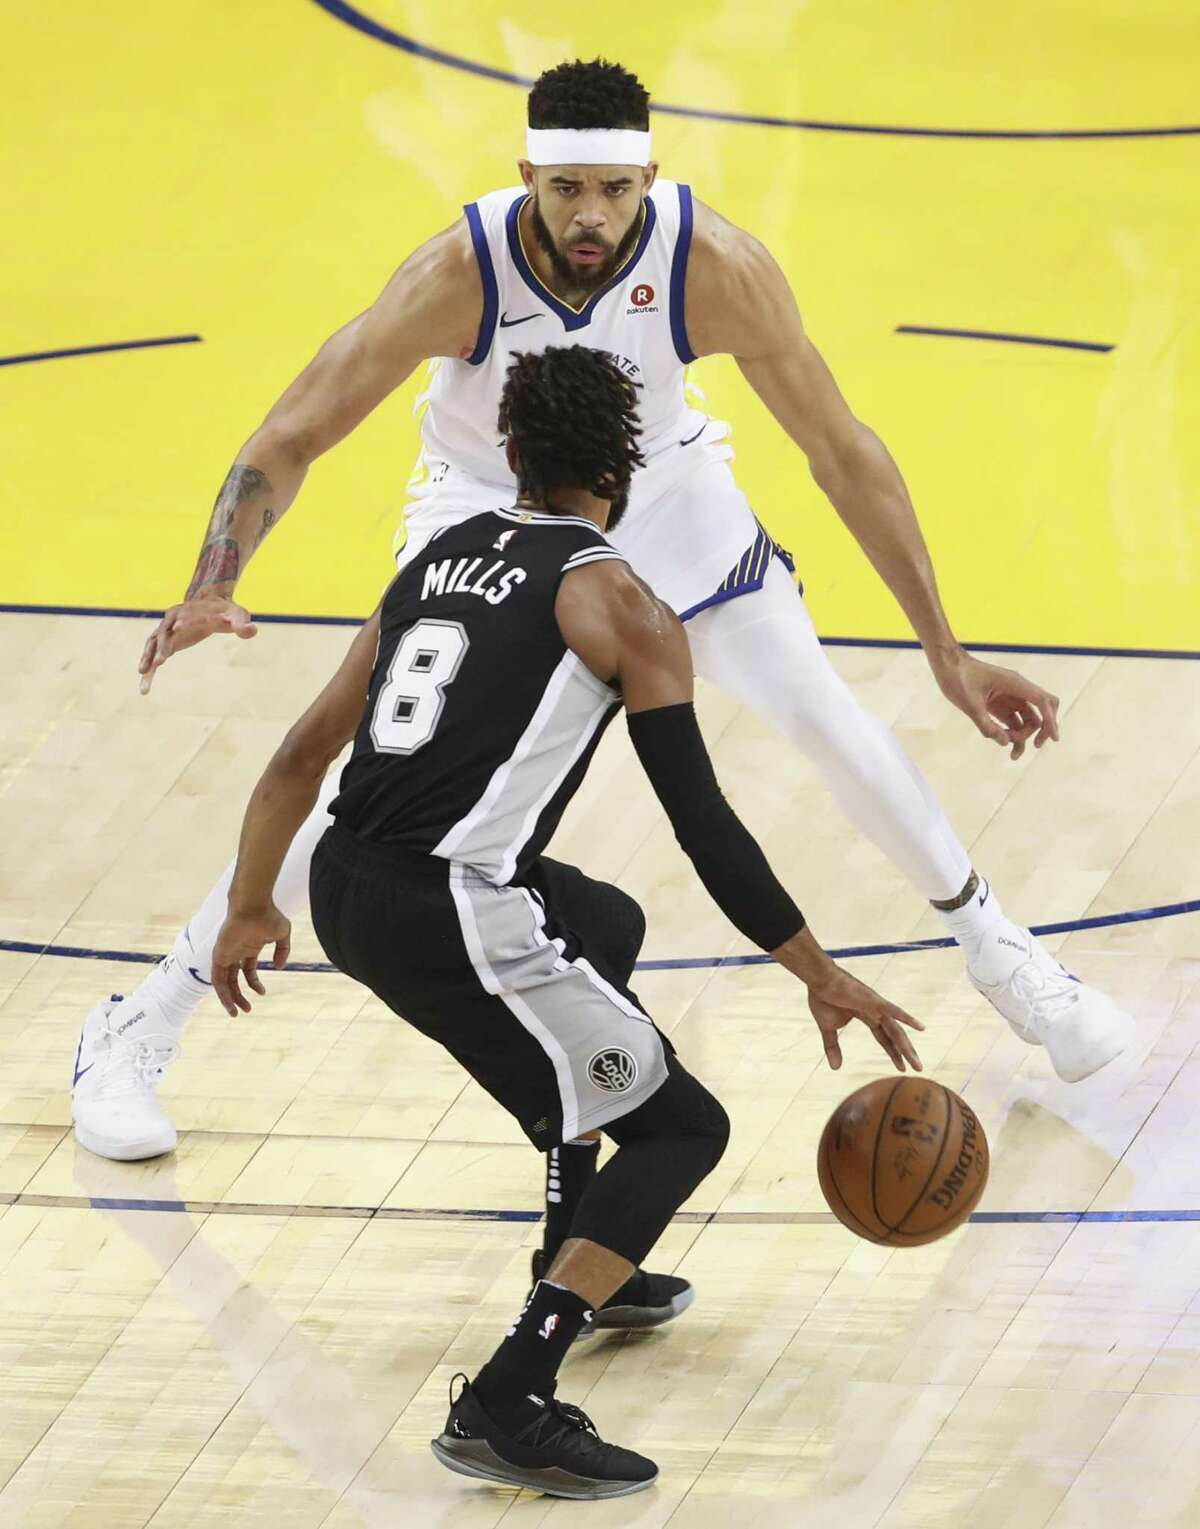 Golden State Warriors' JaVale McGee guards San Antonio Spurs' Patty Mills in the first quarter during game 1 of round 1 of the Western Conference Finals at Oracle Arena on Saturday, April 14, 2018 in Oakland, Calif.